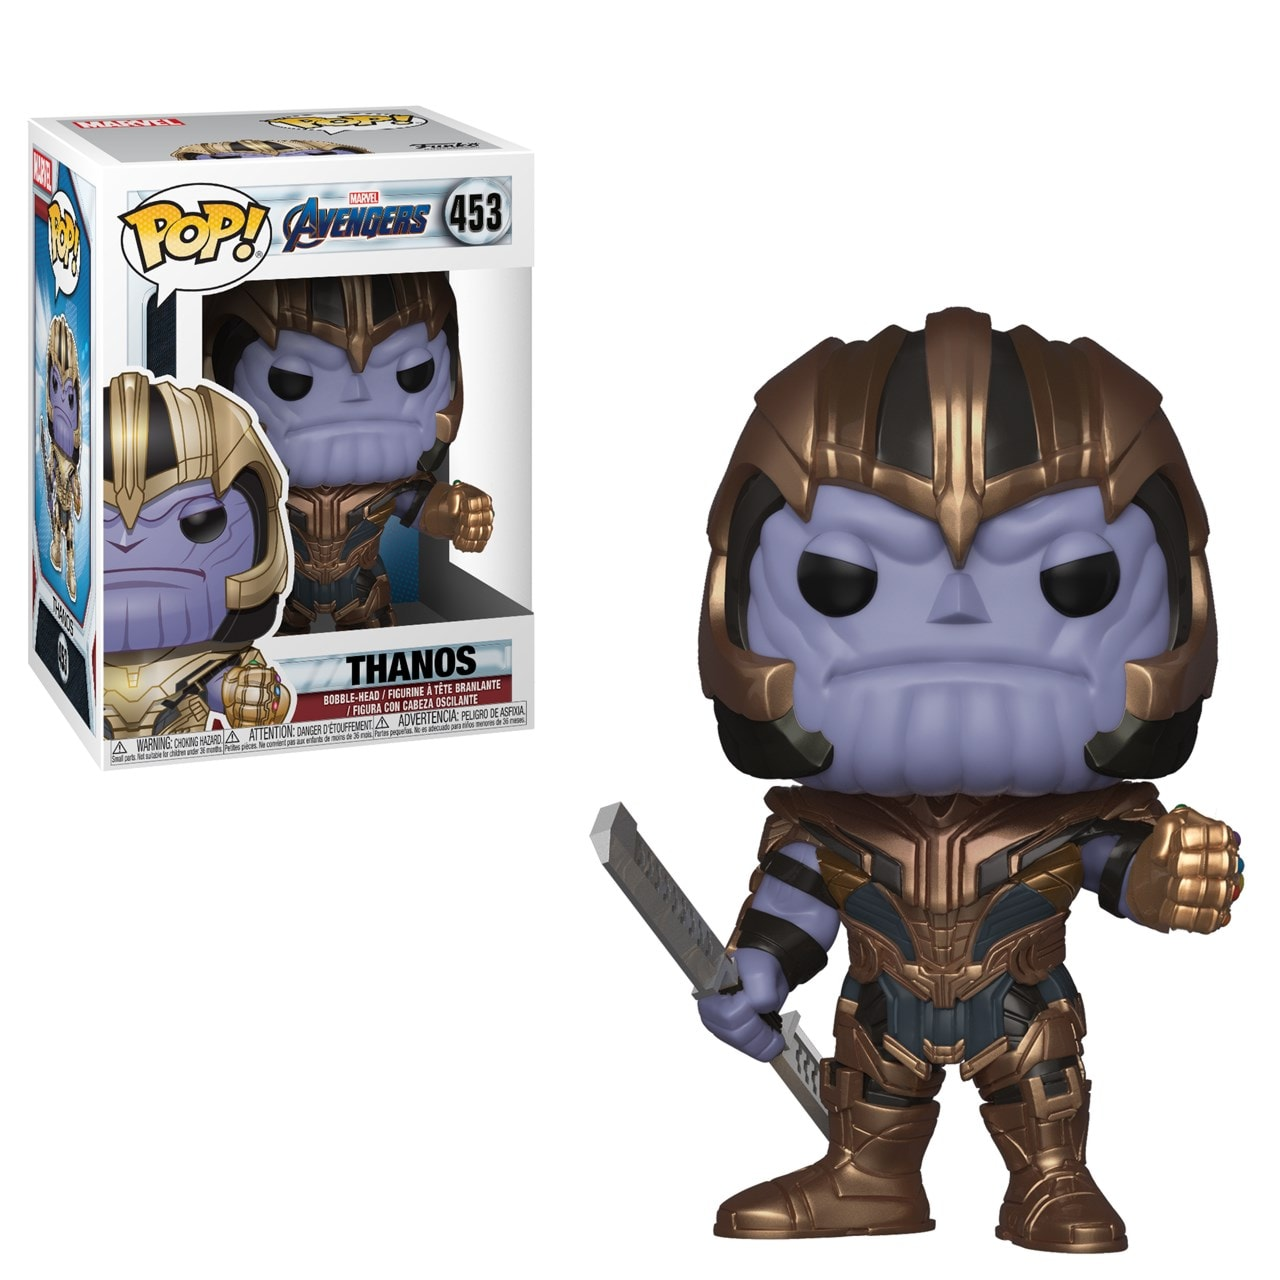 Pop Vinyl: Thanos (453): Avengers Endgame: Marvel - 1